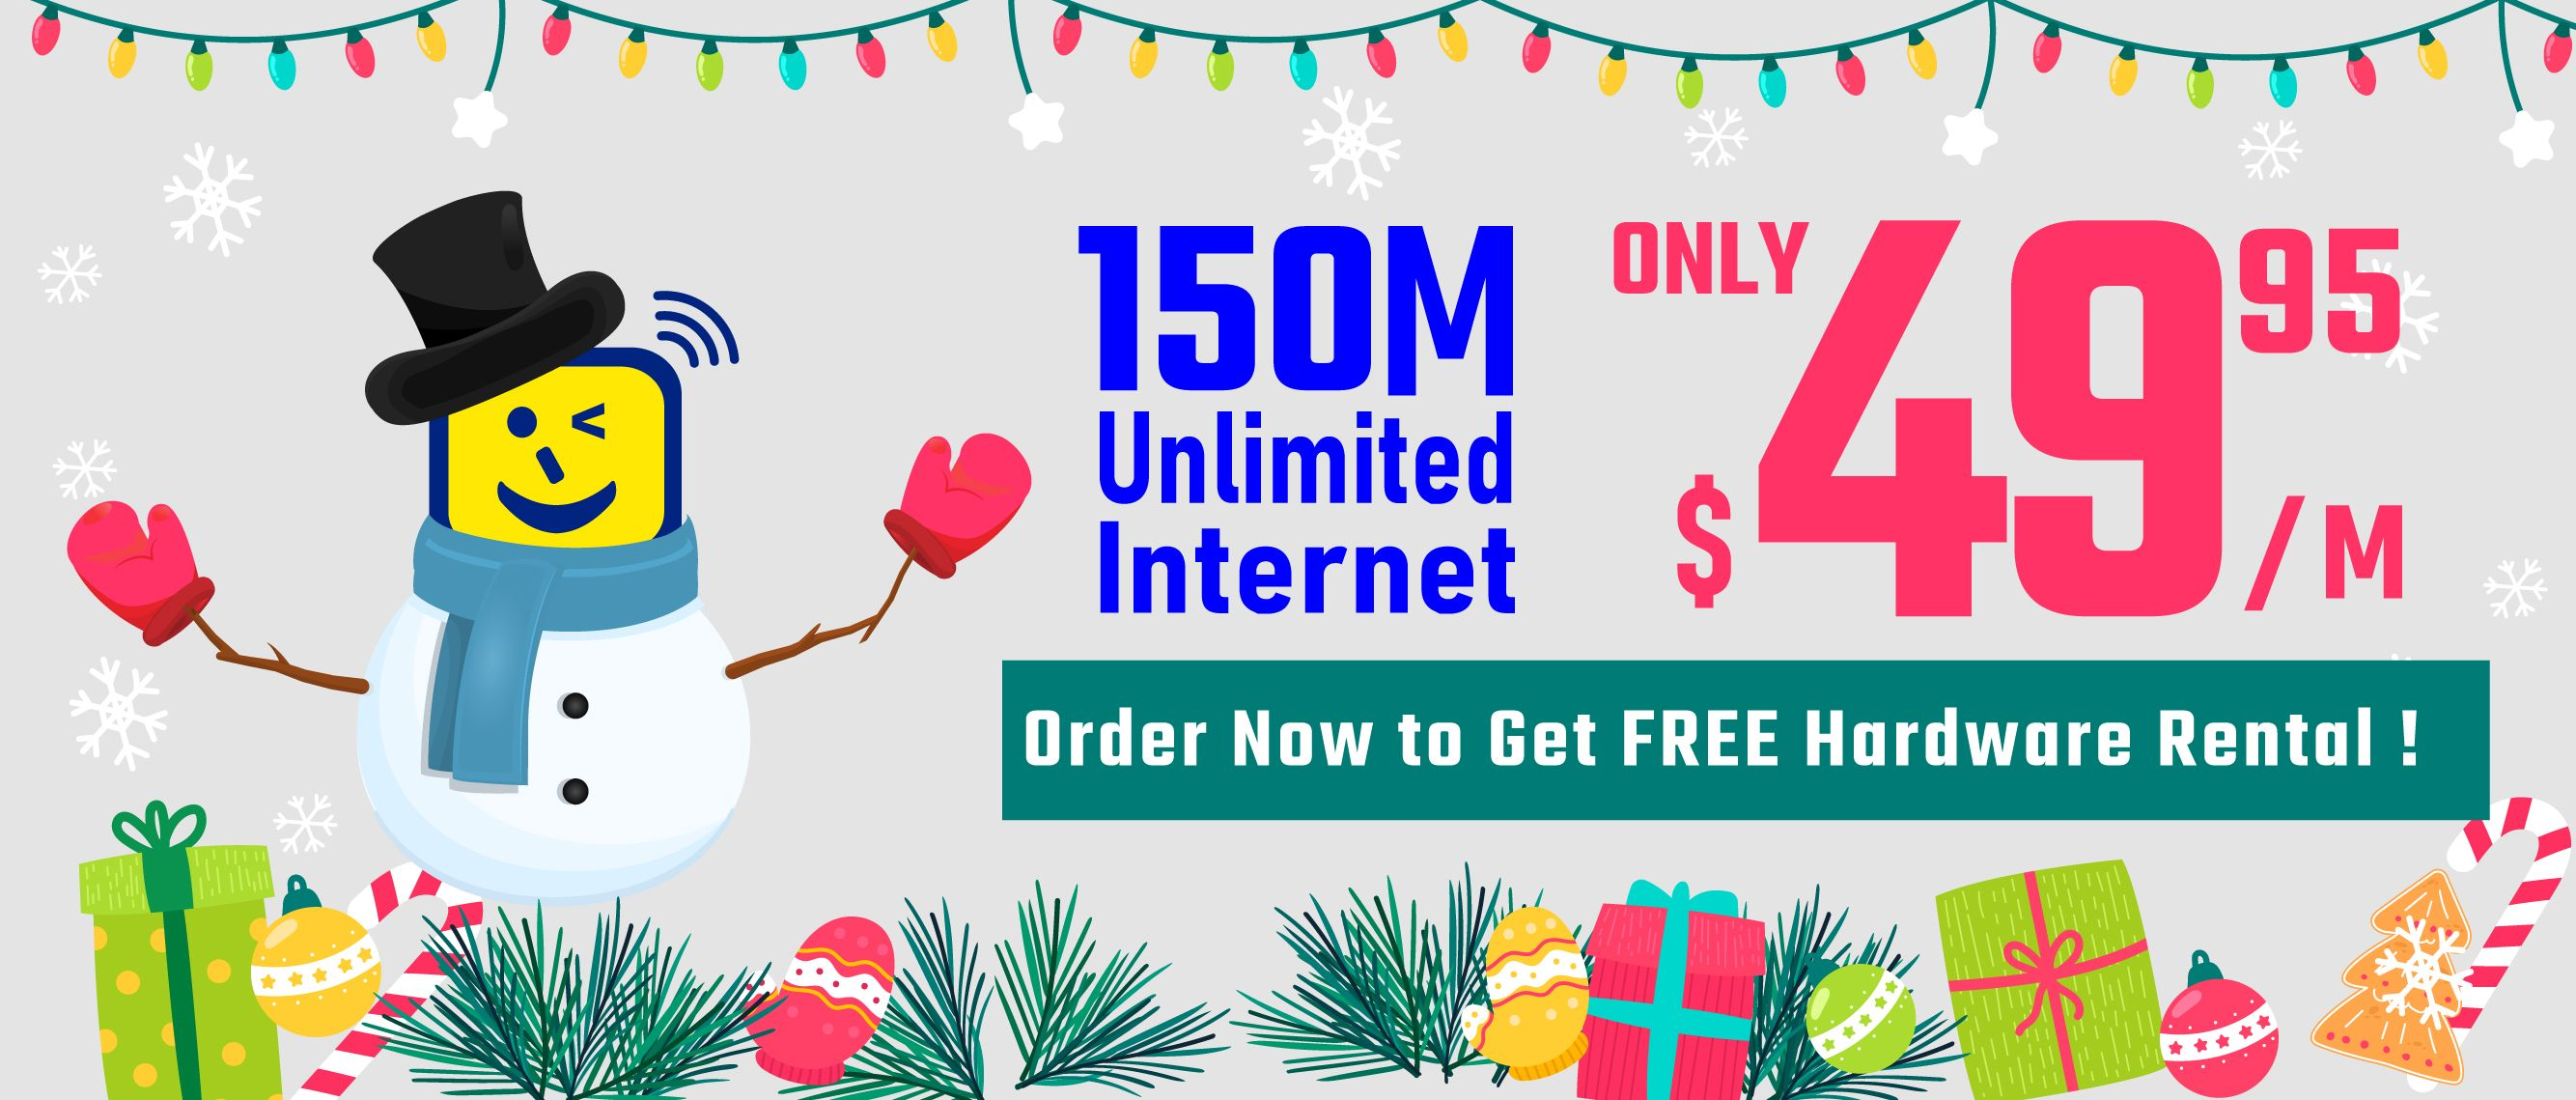 Internet Plans At An Unbeatable Prices High Speed Unlimited Internet For Only 49 95 Per Month Call In Today 514 8 In 2020 With Images Internet Plans Internet How To Plan